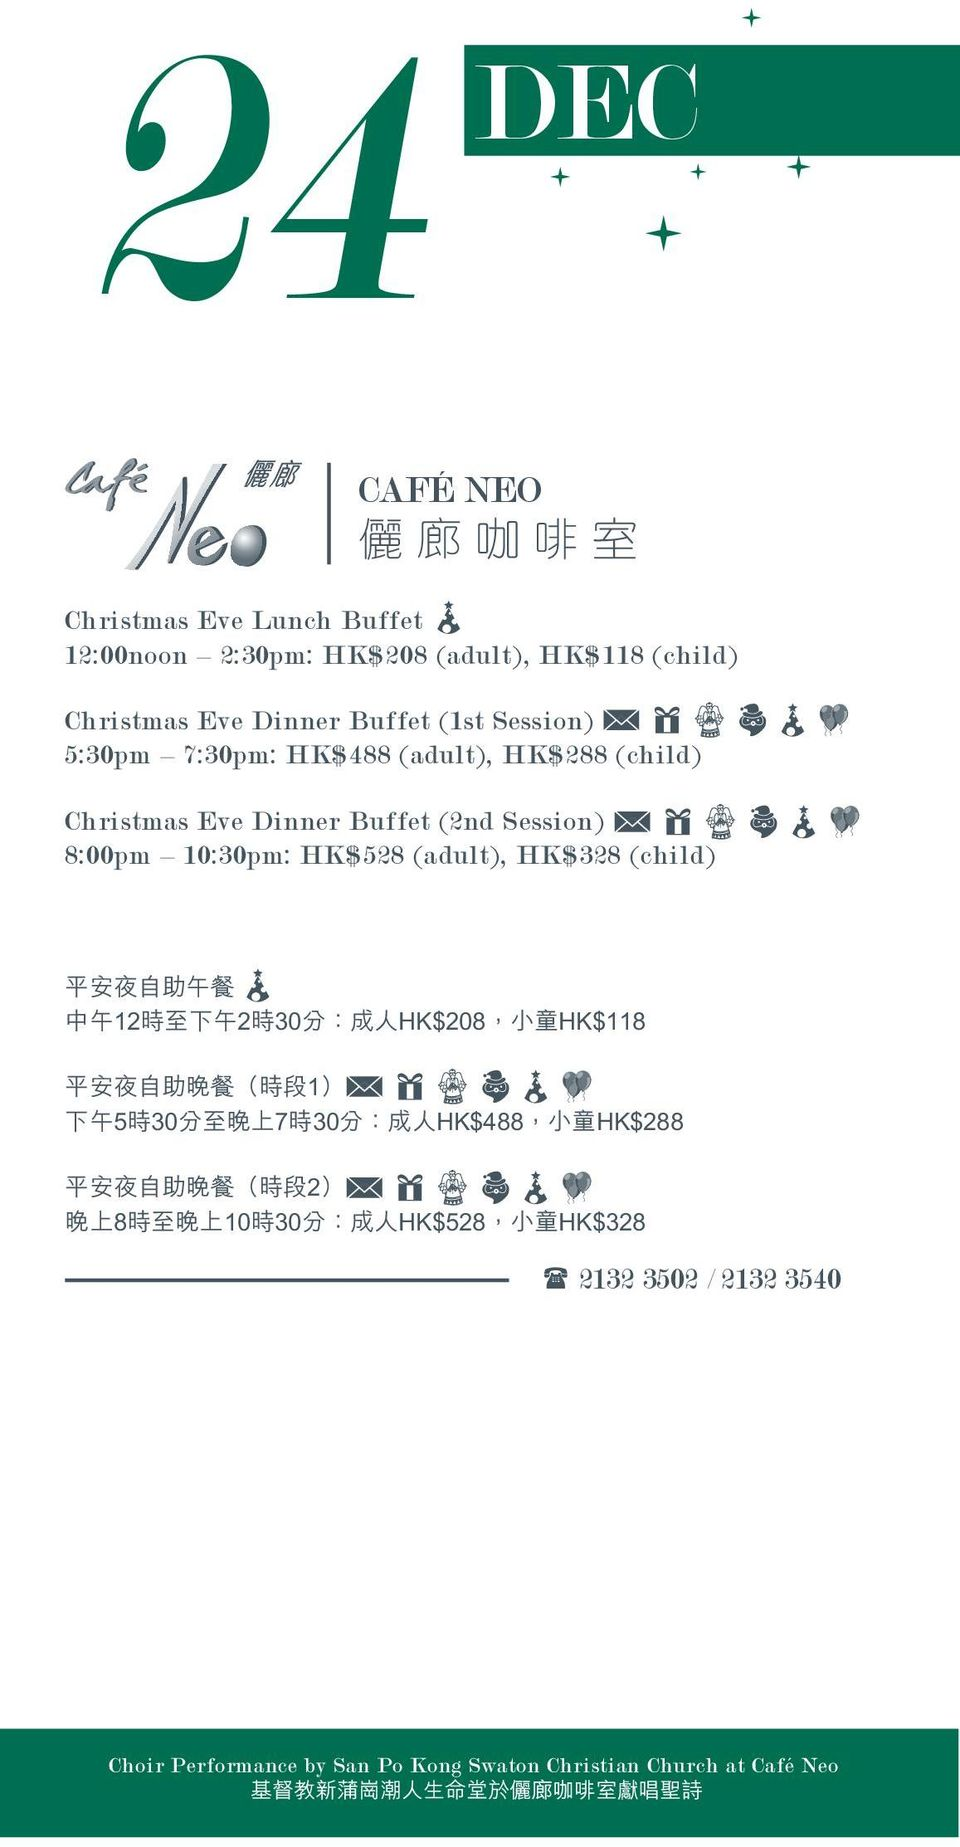 (child) Christmas Eve Dinner Buffet (2nd Session) 8:00pm 10:30pm: HK$528 (adult), HK$328